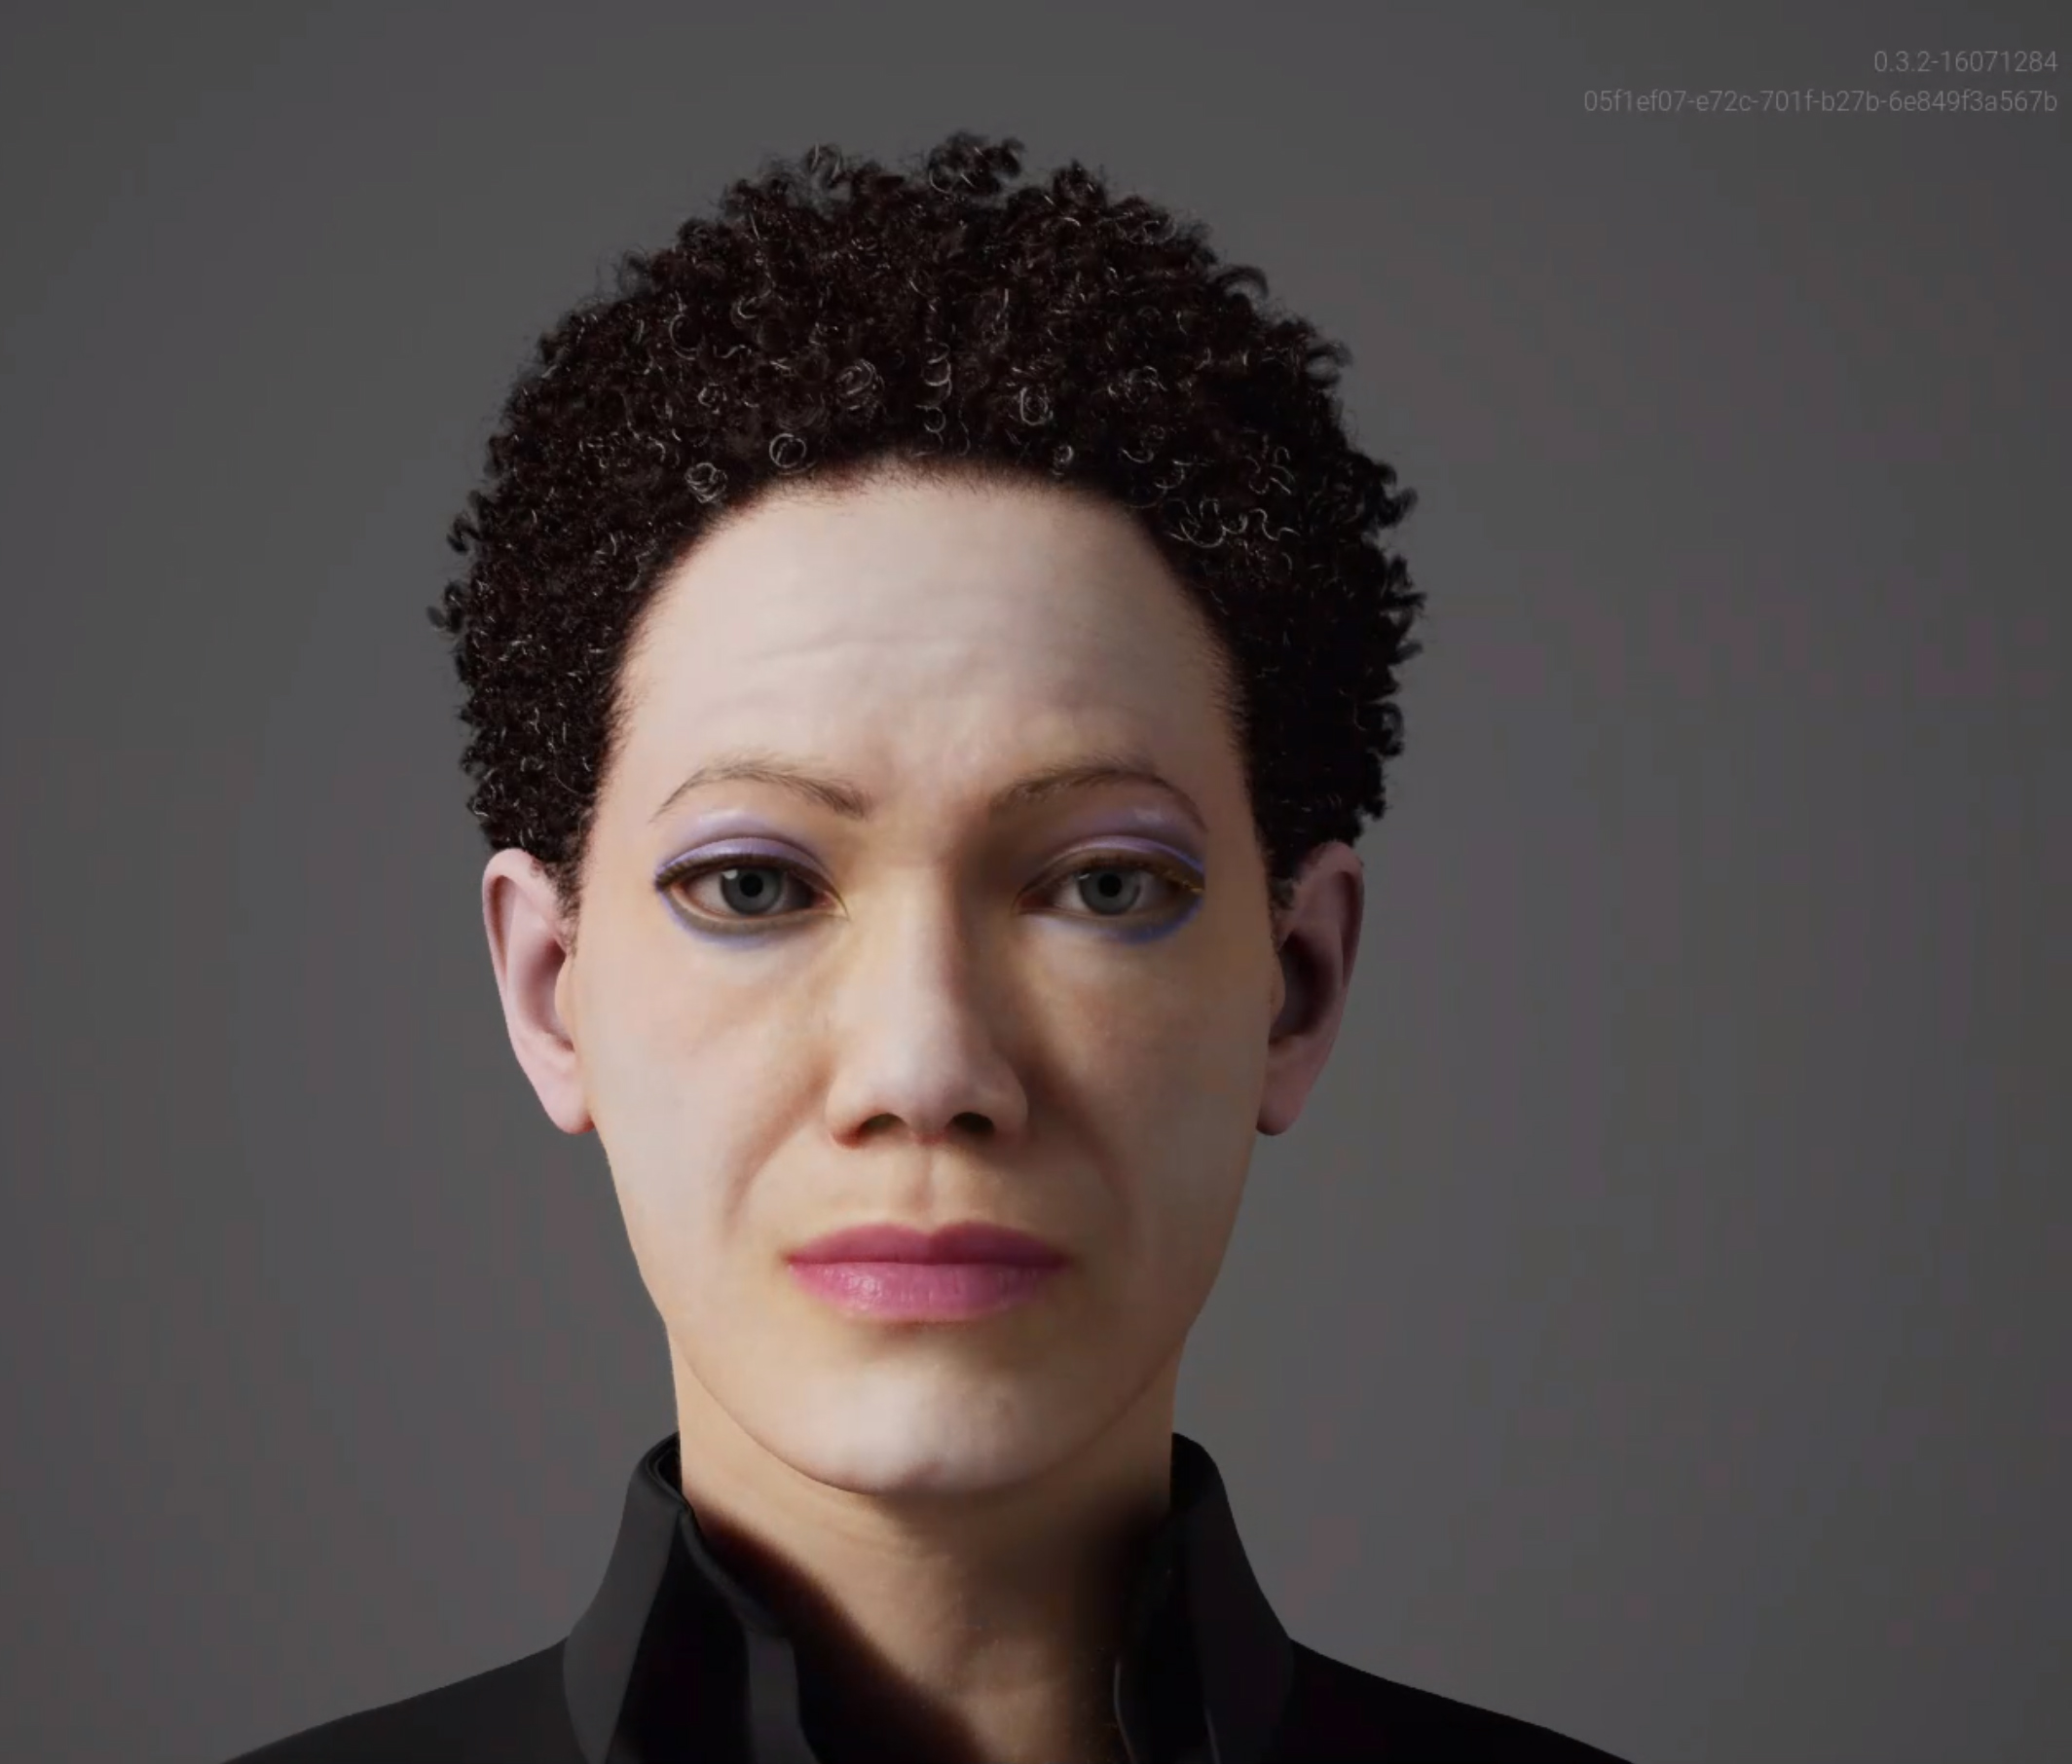 This is Rosinante a MetaHuman created with the Unreal Engine Metahuman Creator